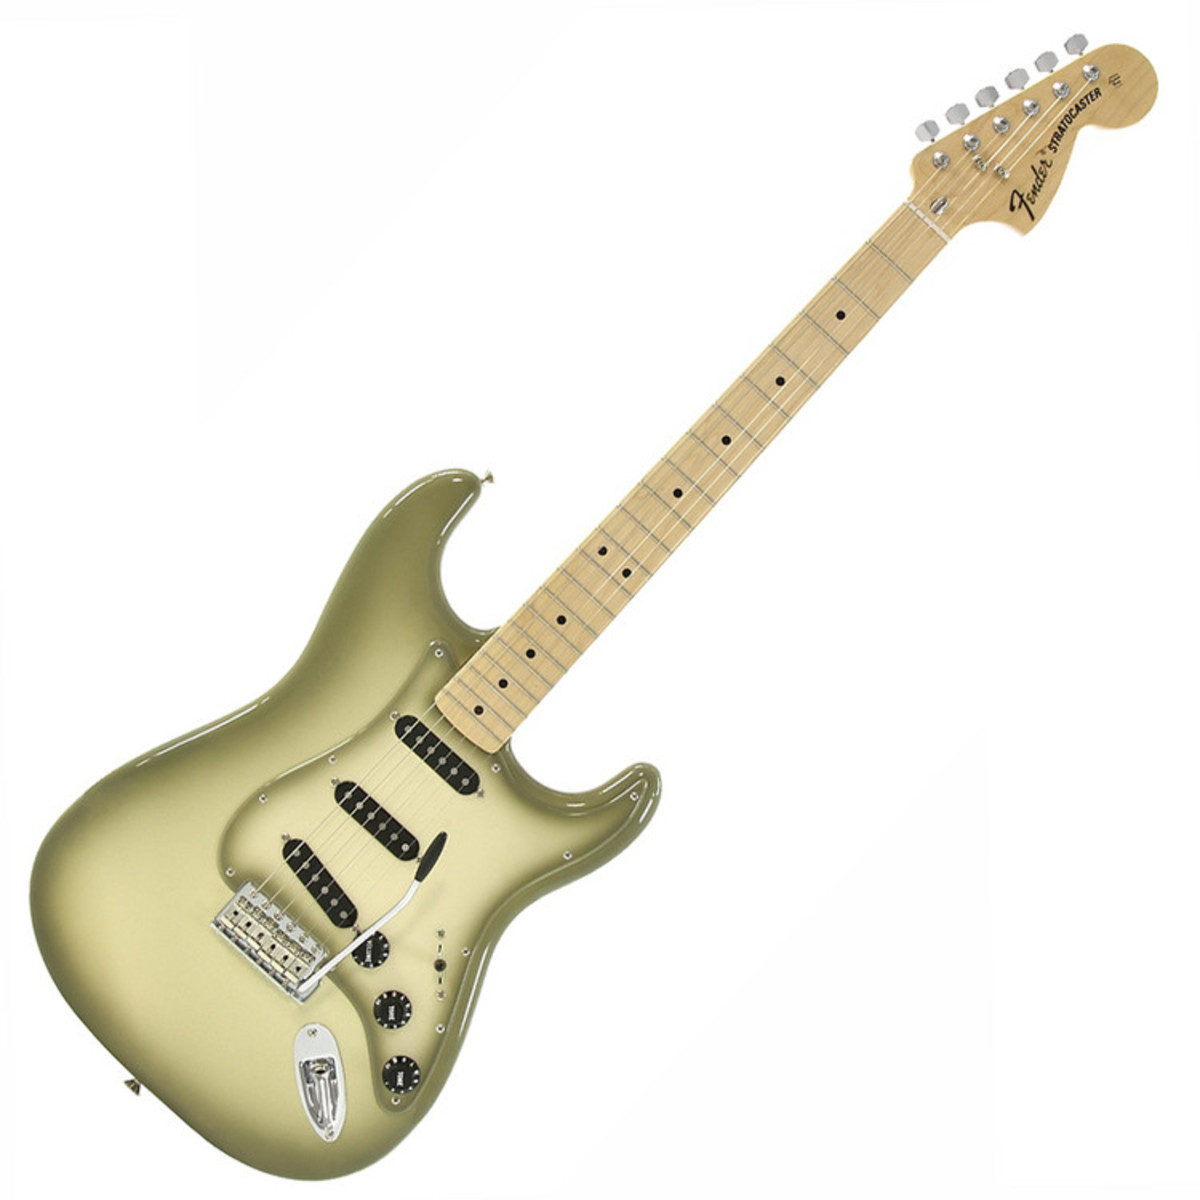 fender antigua stratocaster electric guitar maple neck at gear4music. Black Bedroom Furniture Sets. Home Design Ideas